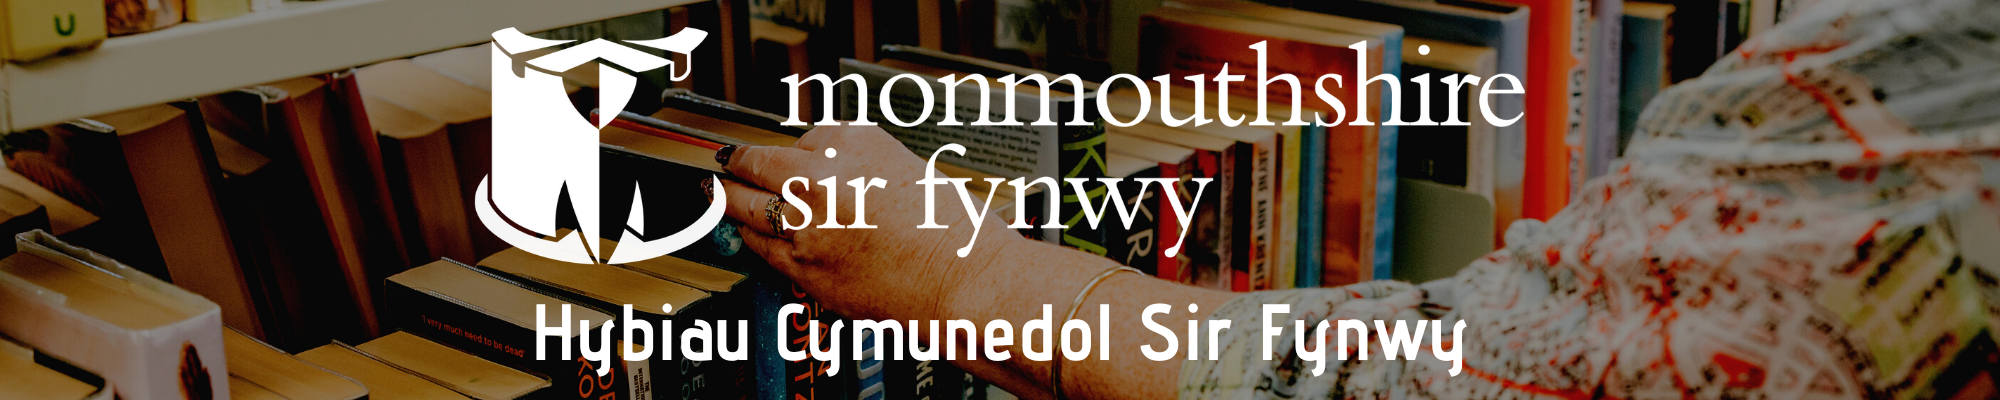 Photo of a library shelf with a ladies hand reaching for a book.  ON top of the background picture is the monmouthshire logo with the text 'Hybiau Cymunedol Sir Fynwy'